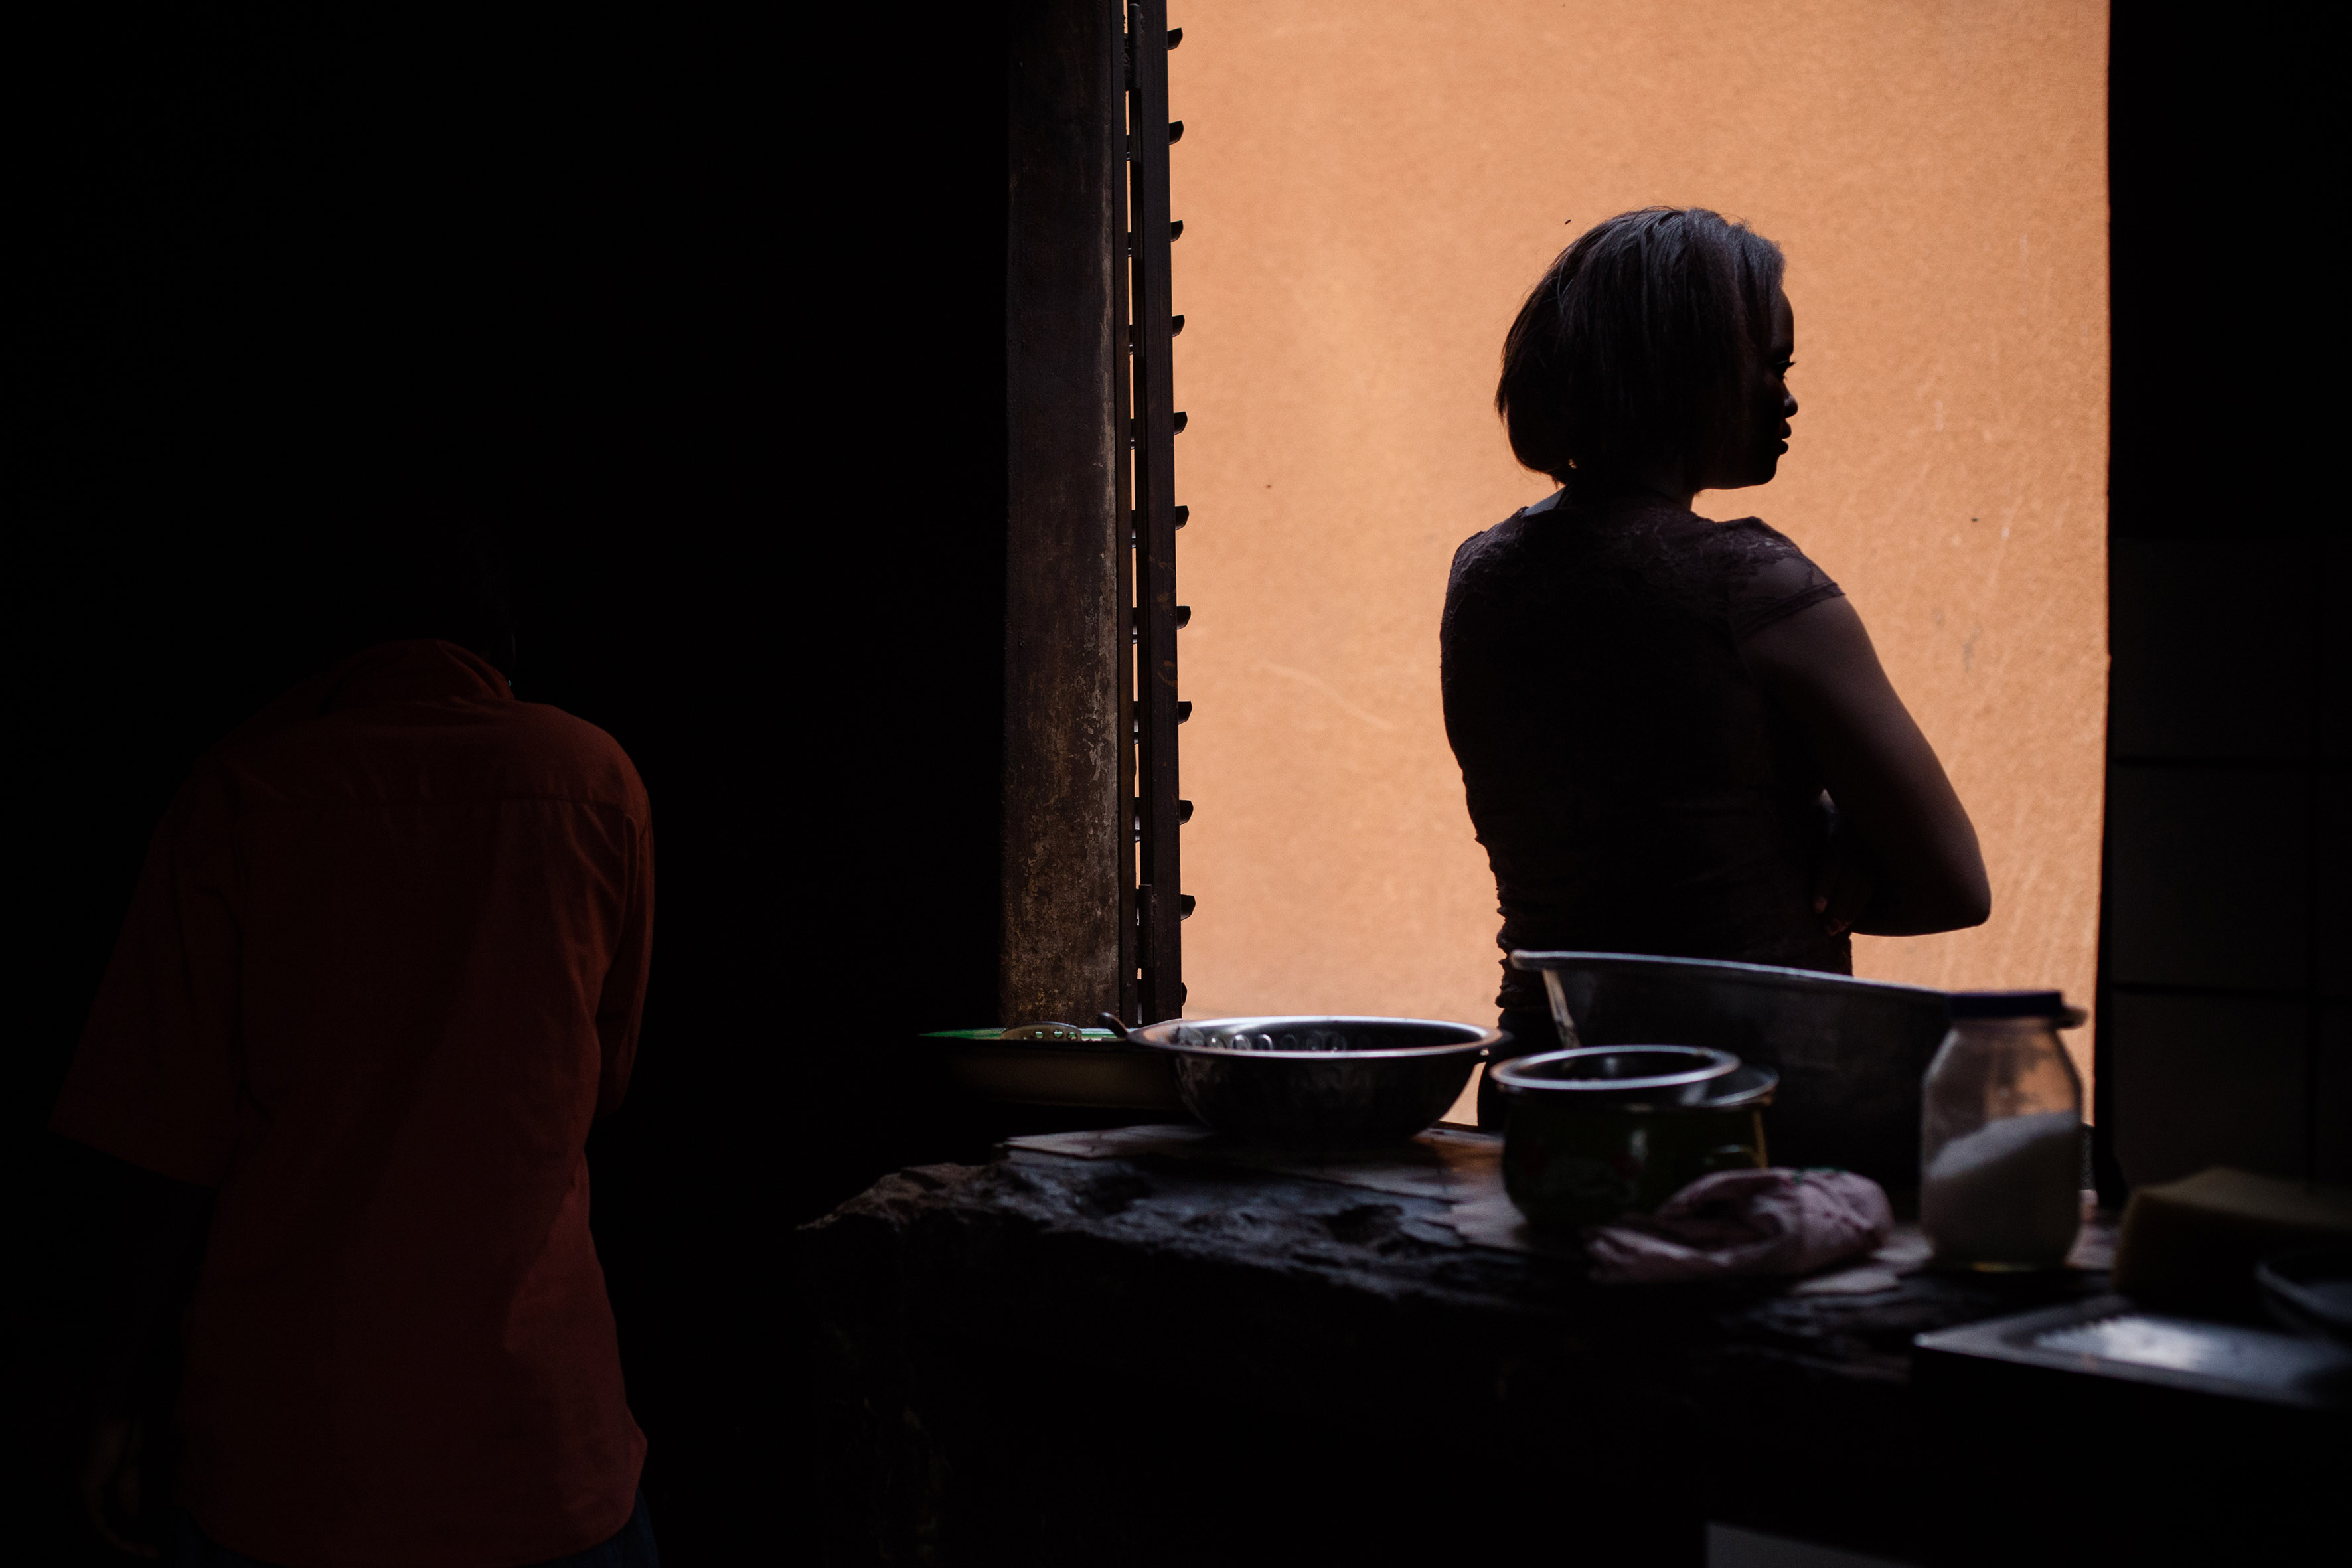 Foceb (Fondation Cardinale Emile Biyenda) provides refuge to survivors of rape, early and forced marriage and unwanted pregnancy in central Ouagadougou, capital of Burkina Faso.